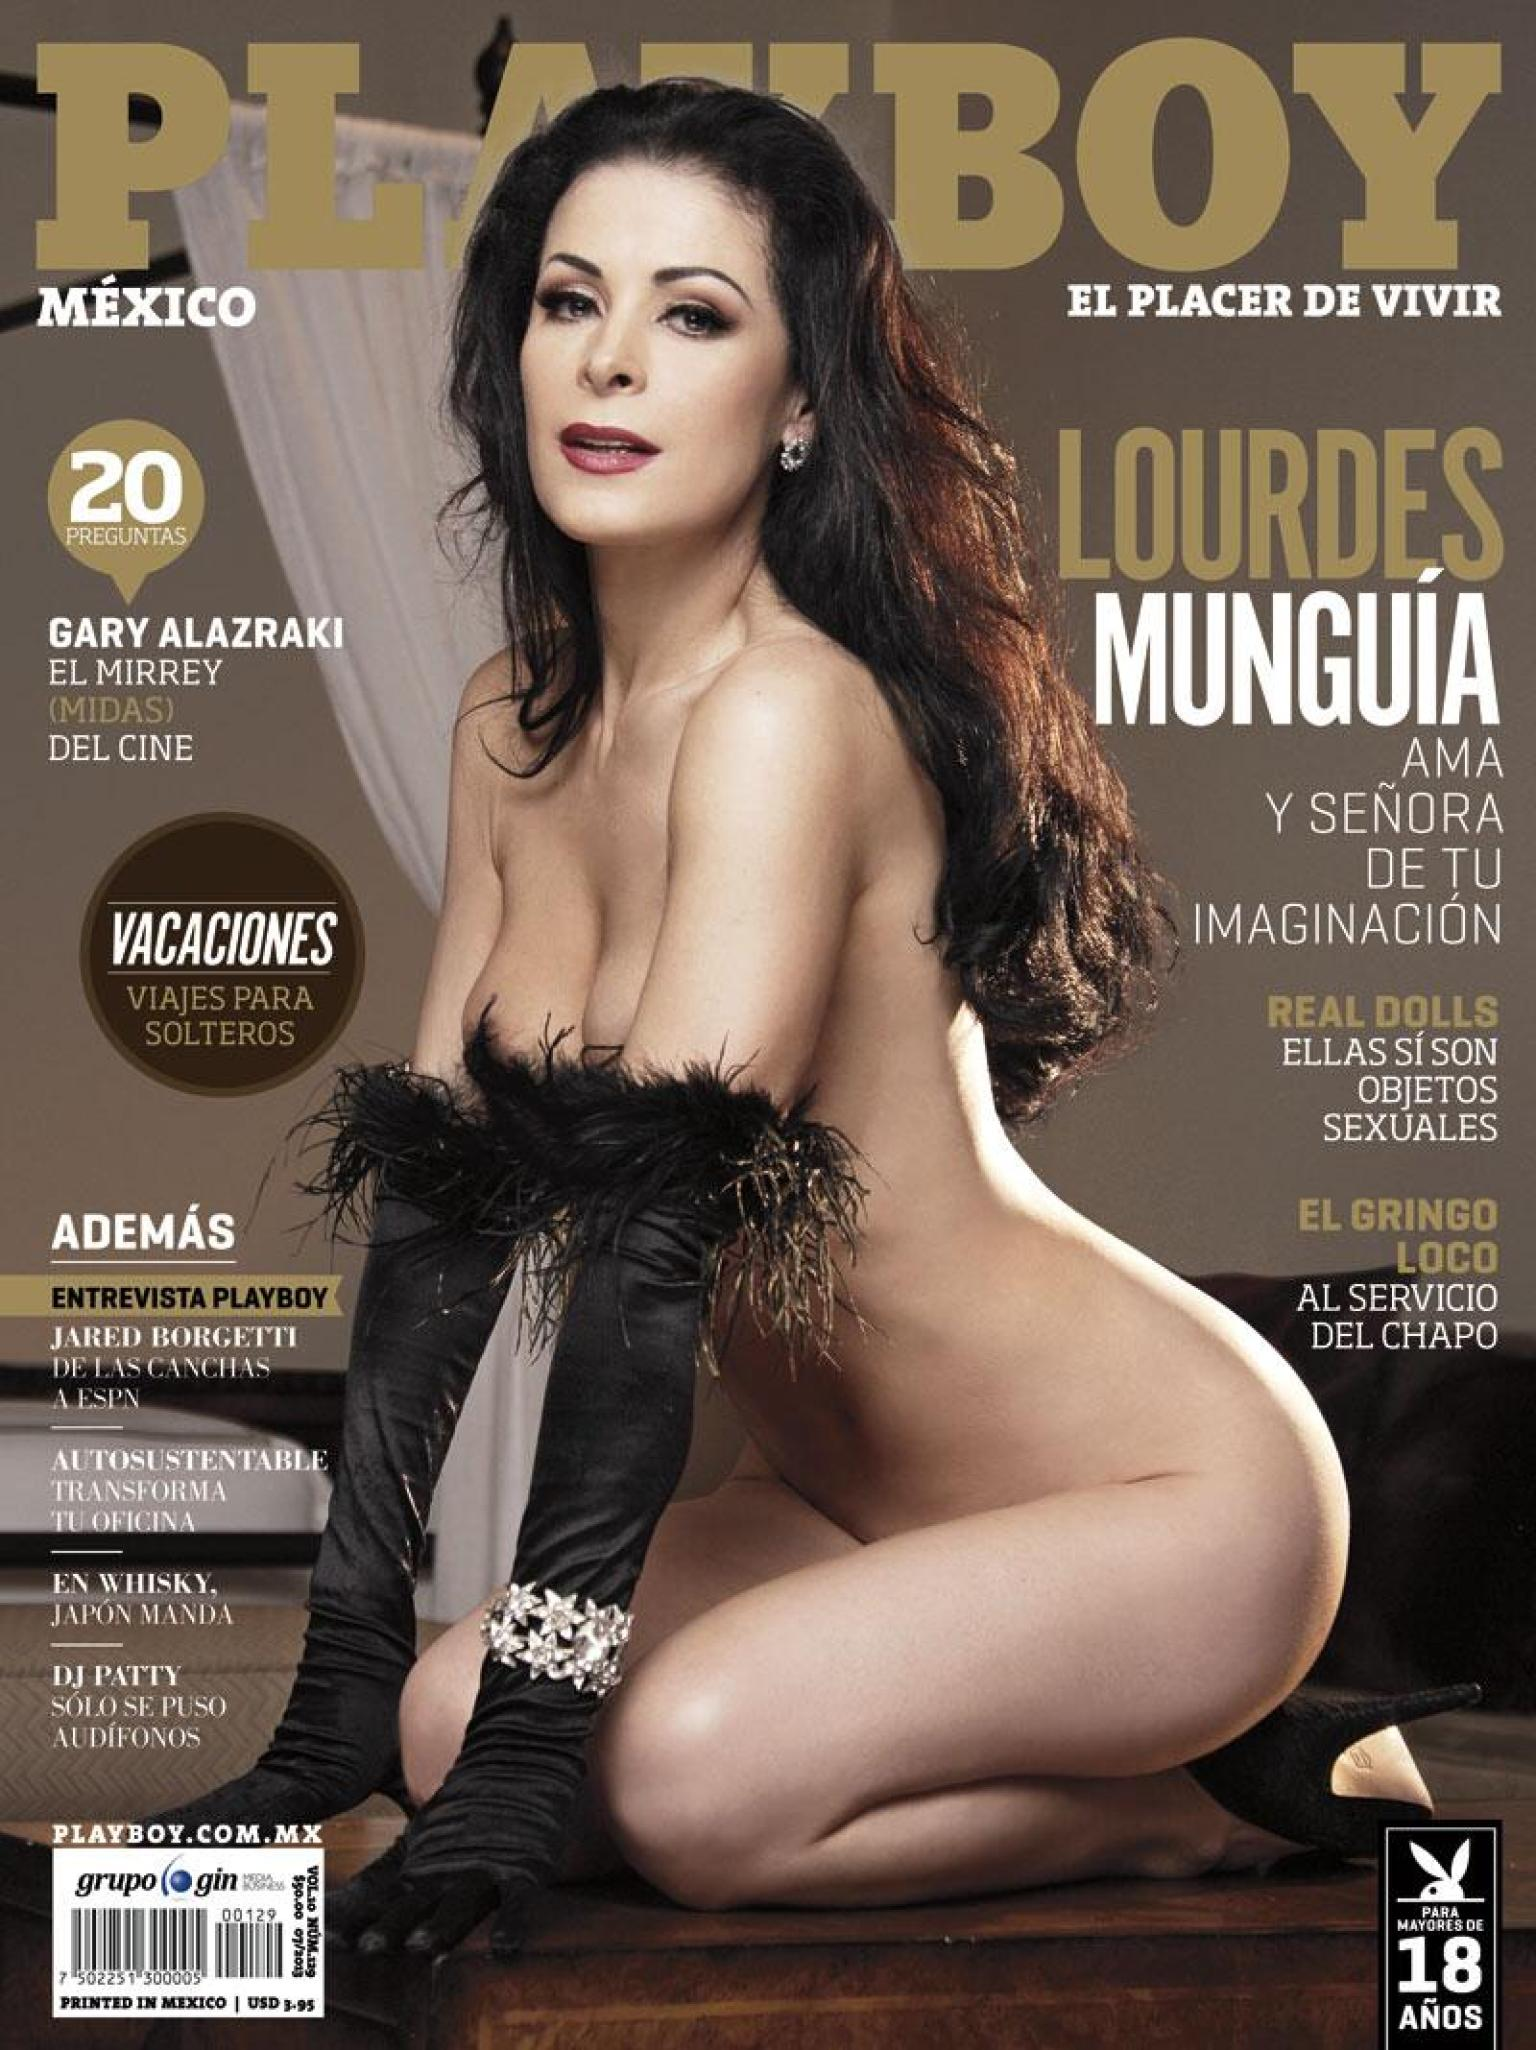 LOURDES-MUNGUIA-PLAYBOY-facebook.jpg